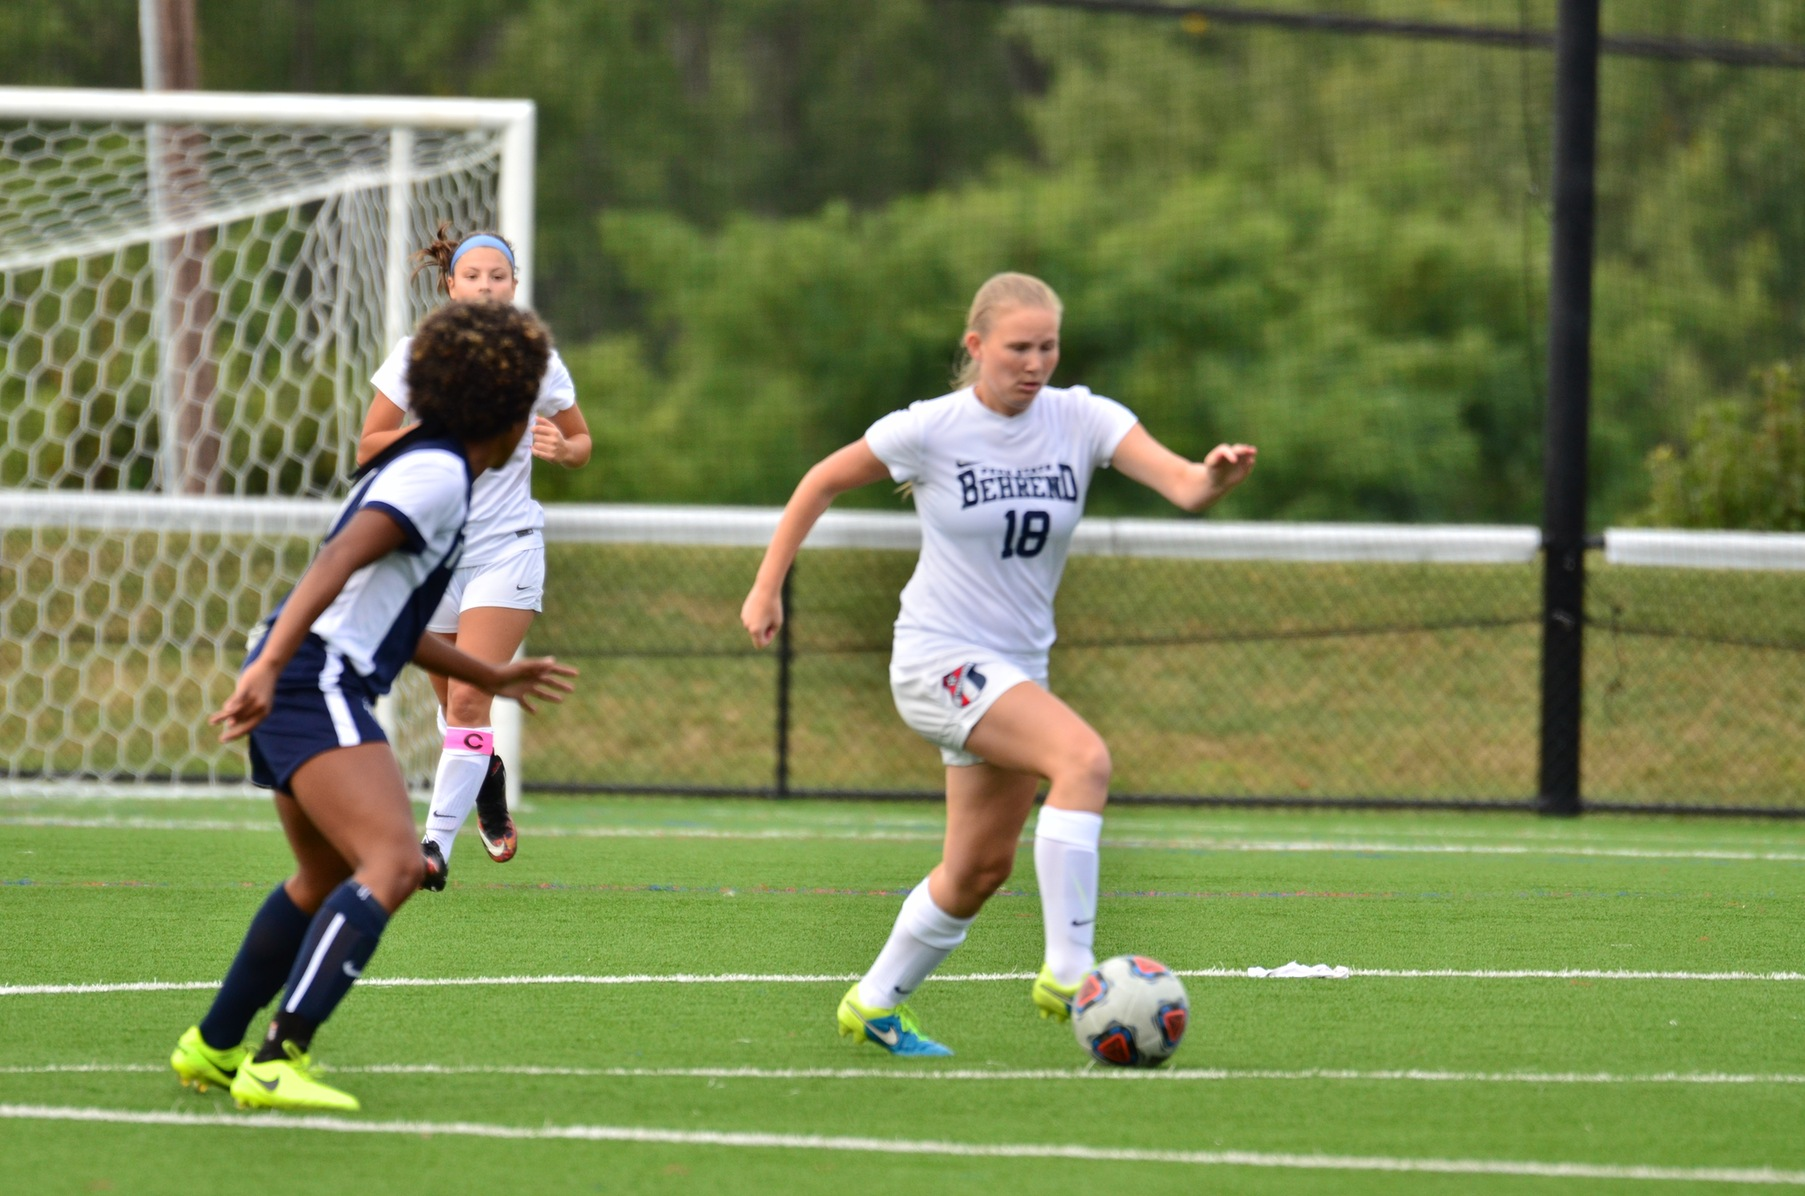 Donohue Named ECAC & AMCC Offensive Player of the Week